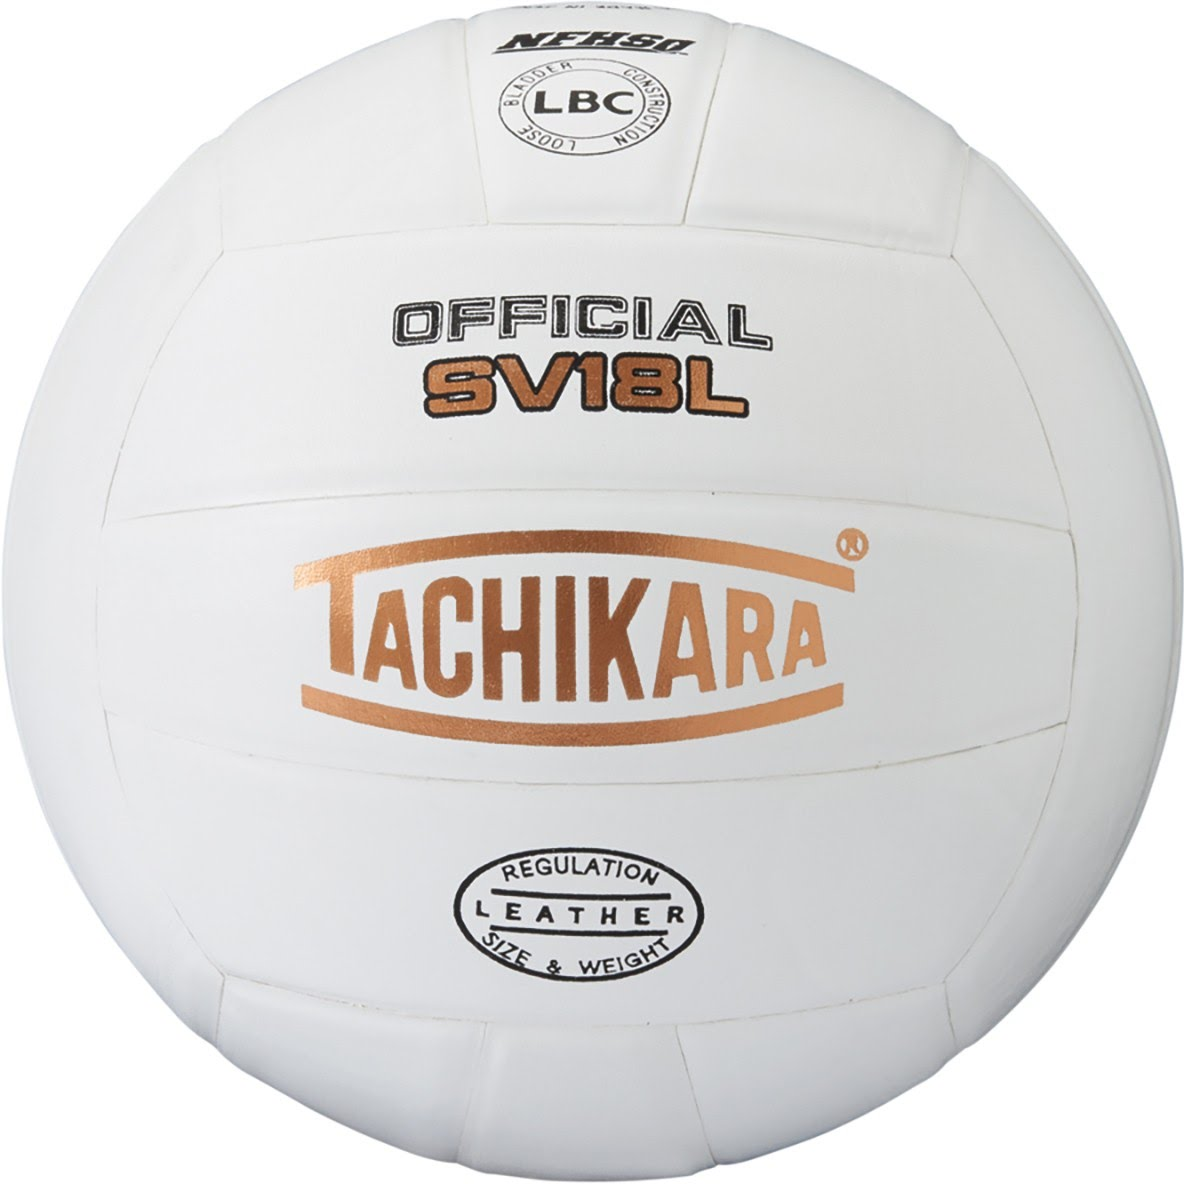 Tachikara SV18L Volleyball - 61759